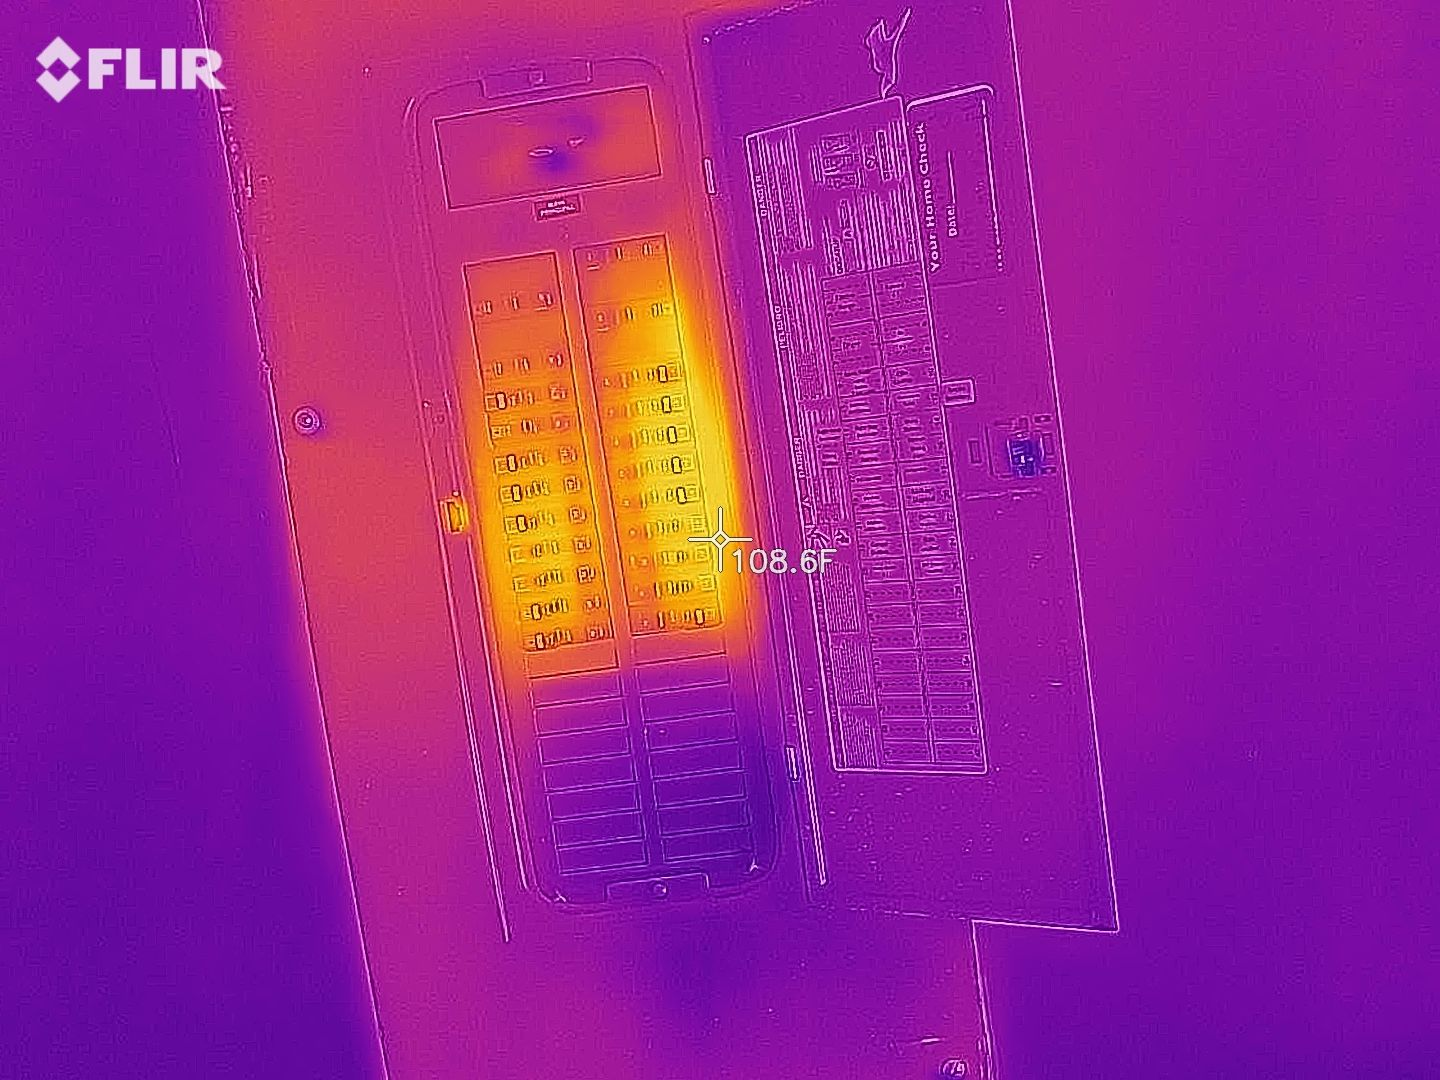 Thermal imaging scan of electrical service panel